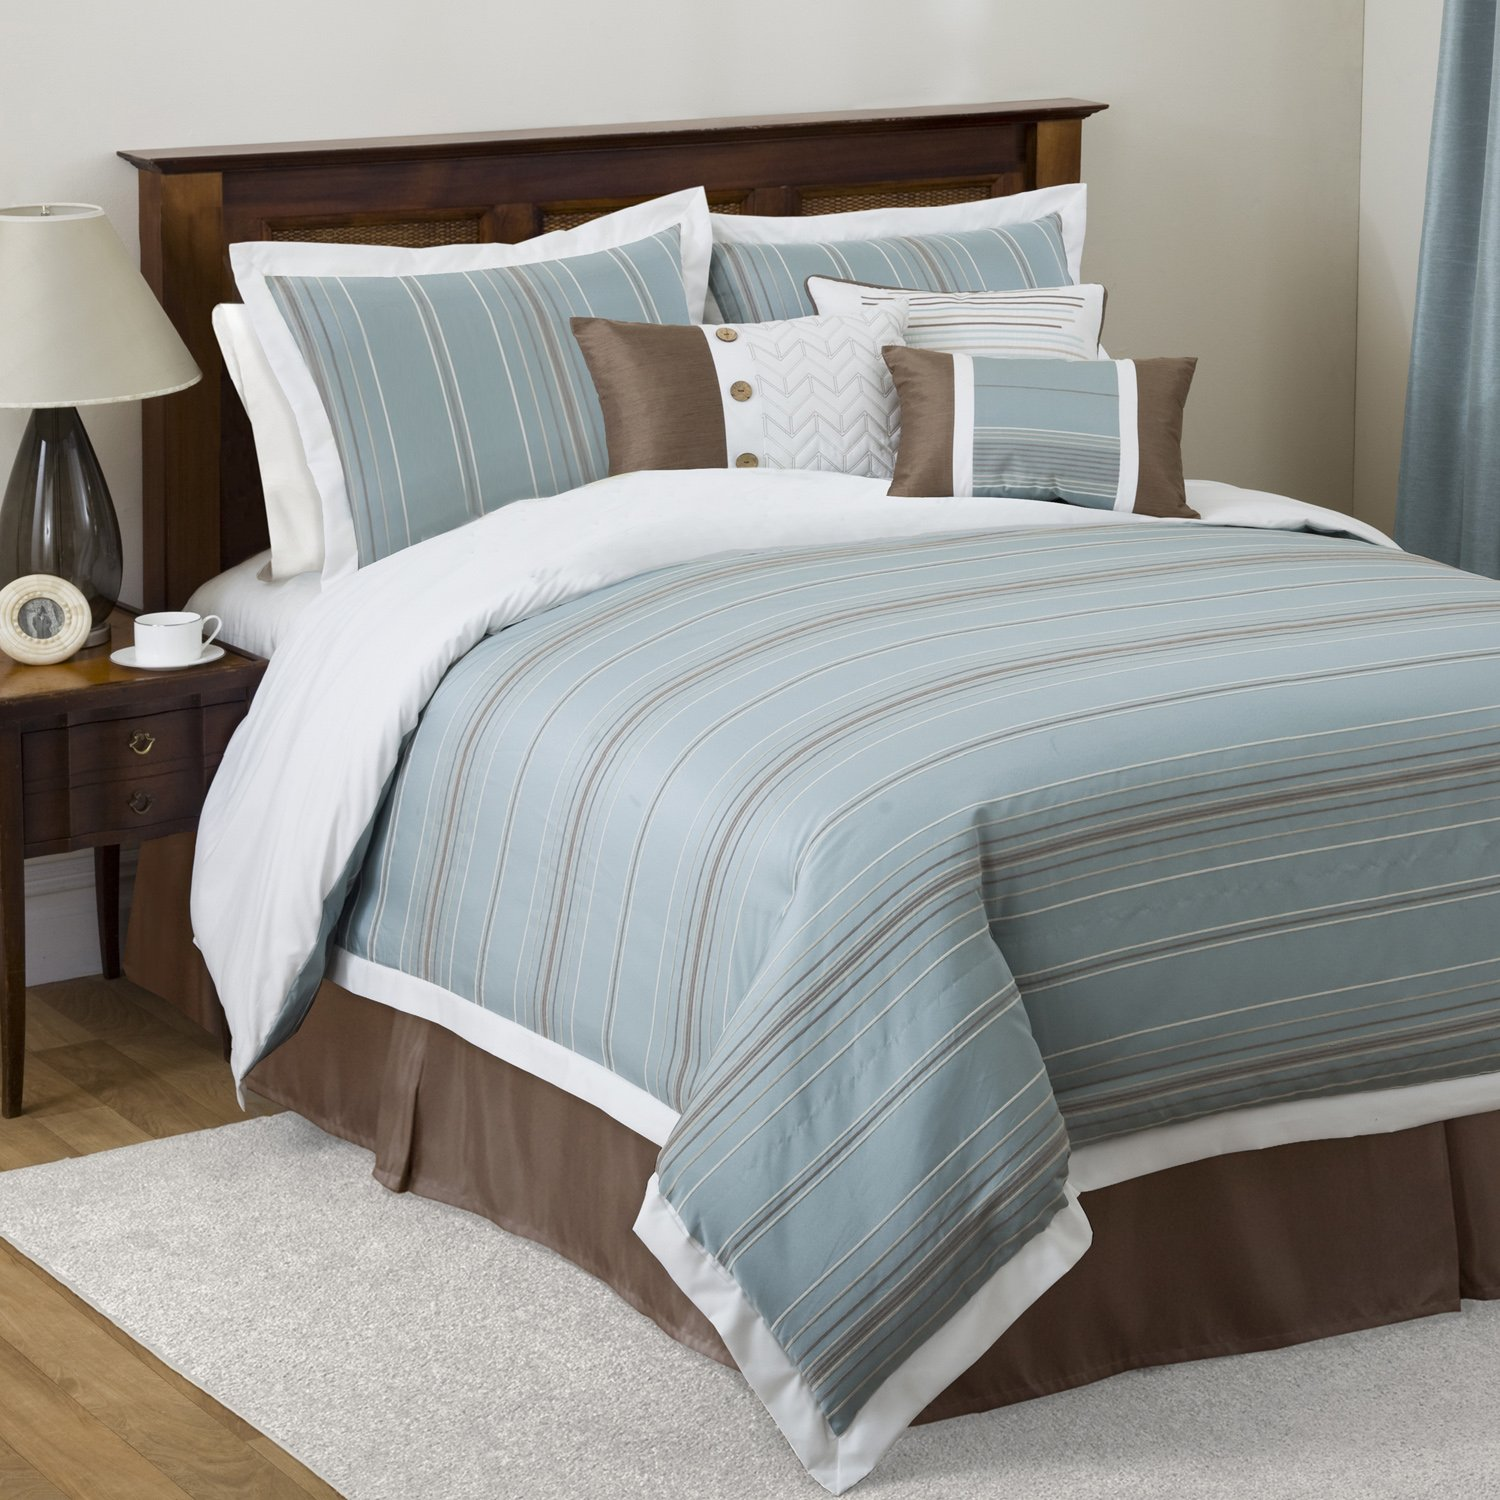 Blue and brown bed sets home decor gallery for Brown and blue bedroom ideas